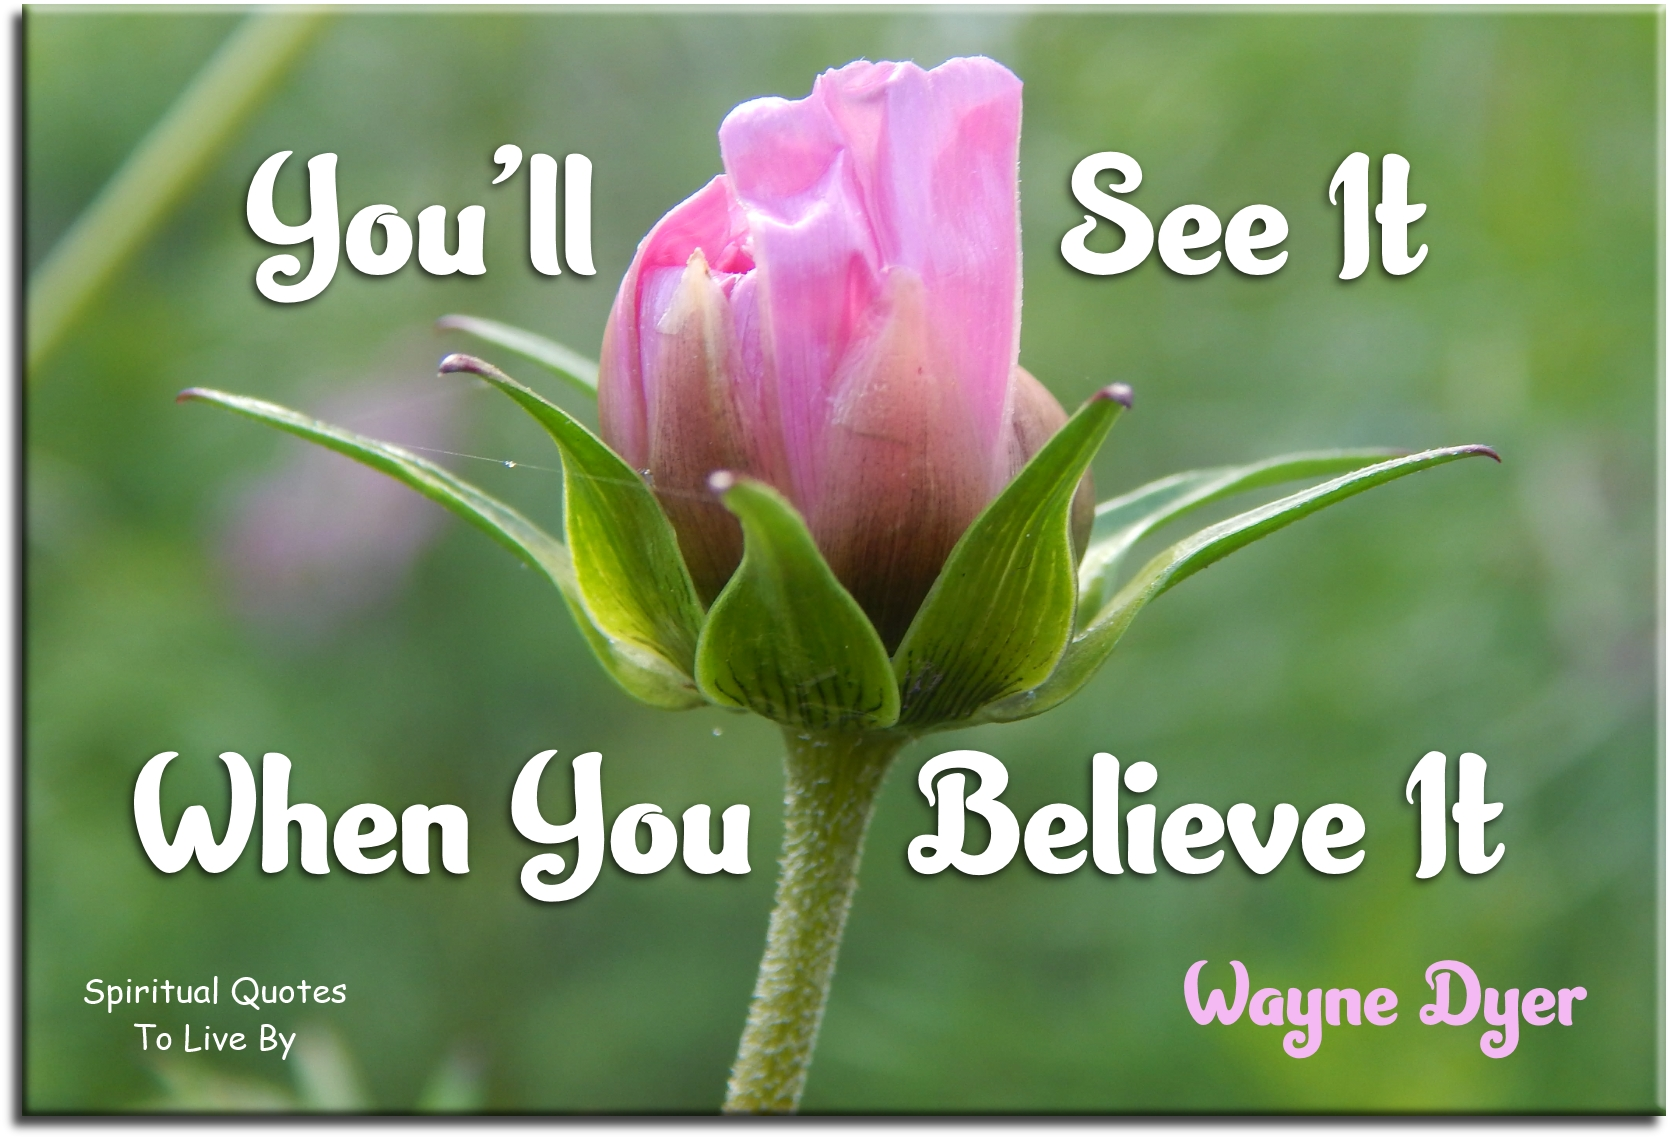 Wayne Dyer quote: You'll see it.. When you believe it.  - Spiritual Quotes To Live By